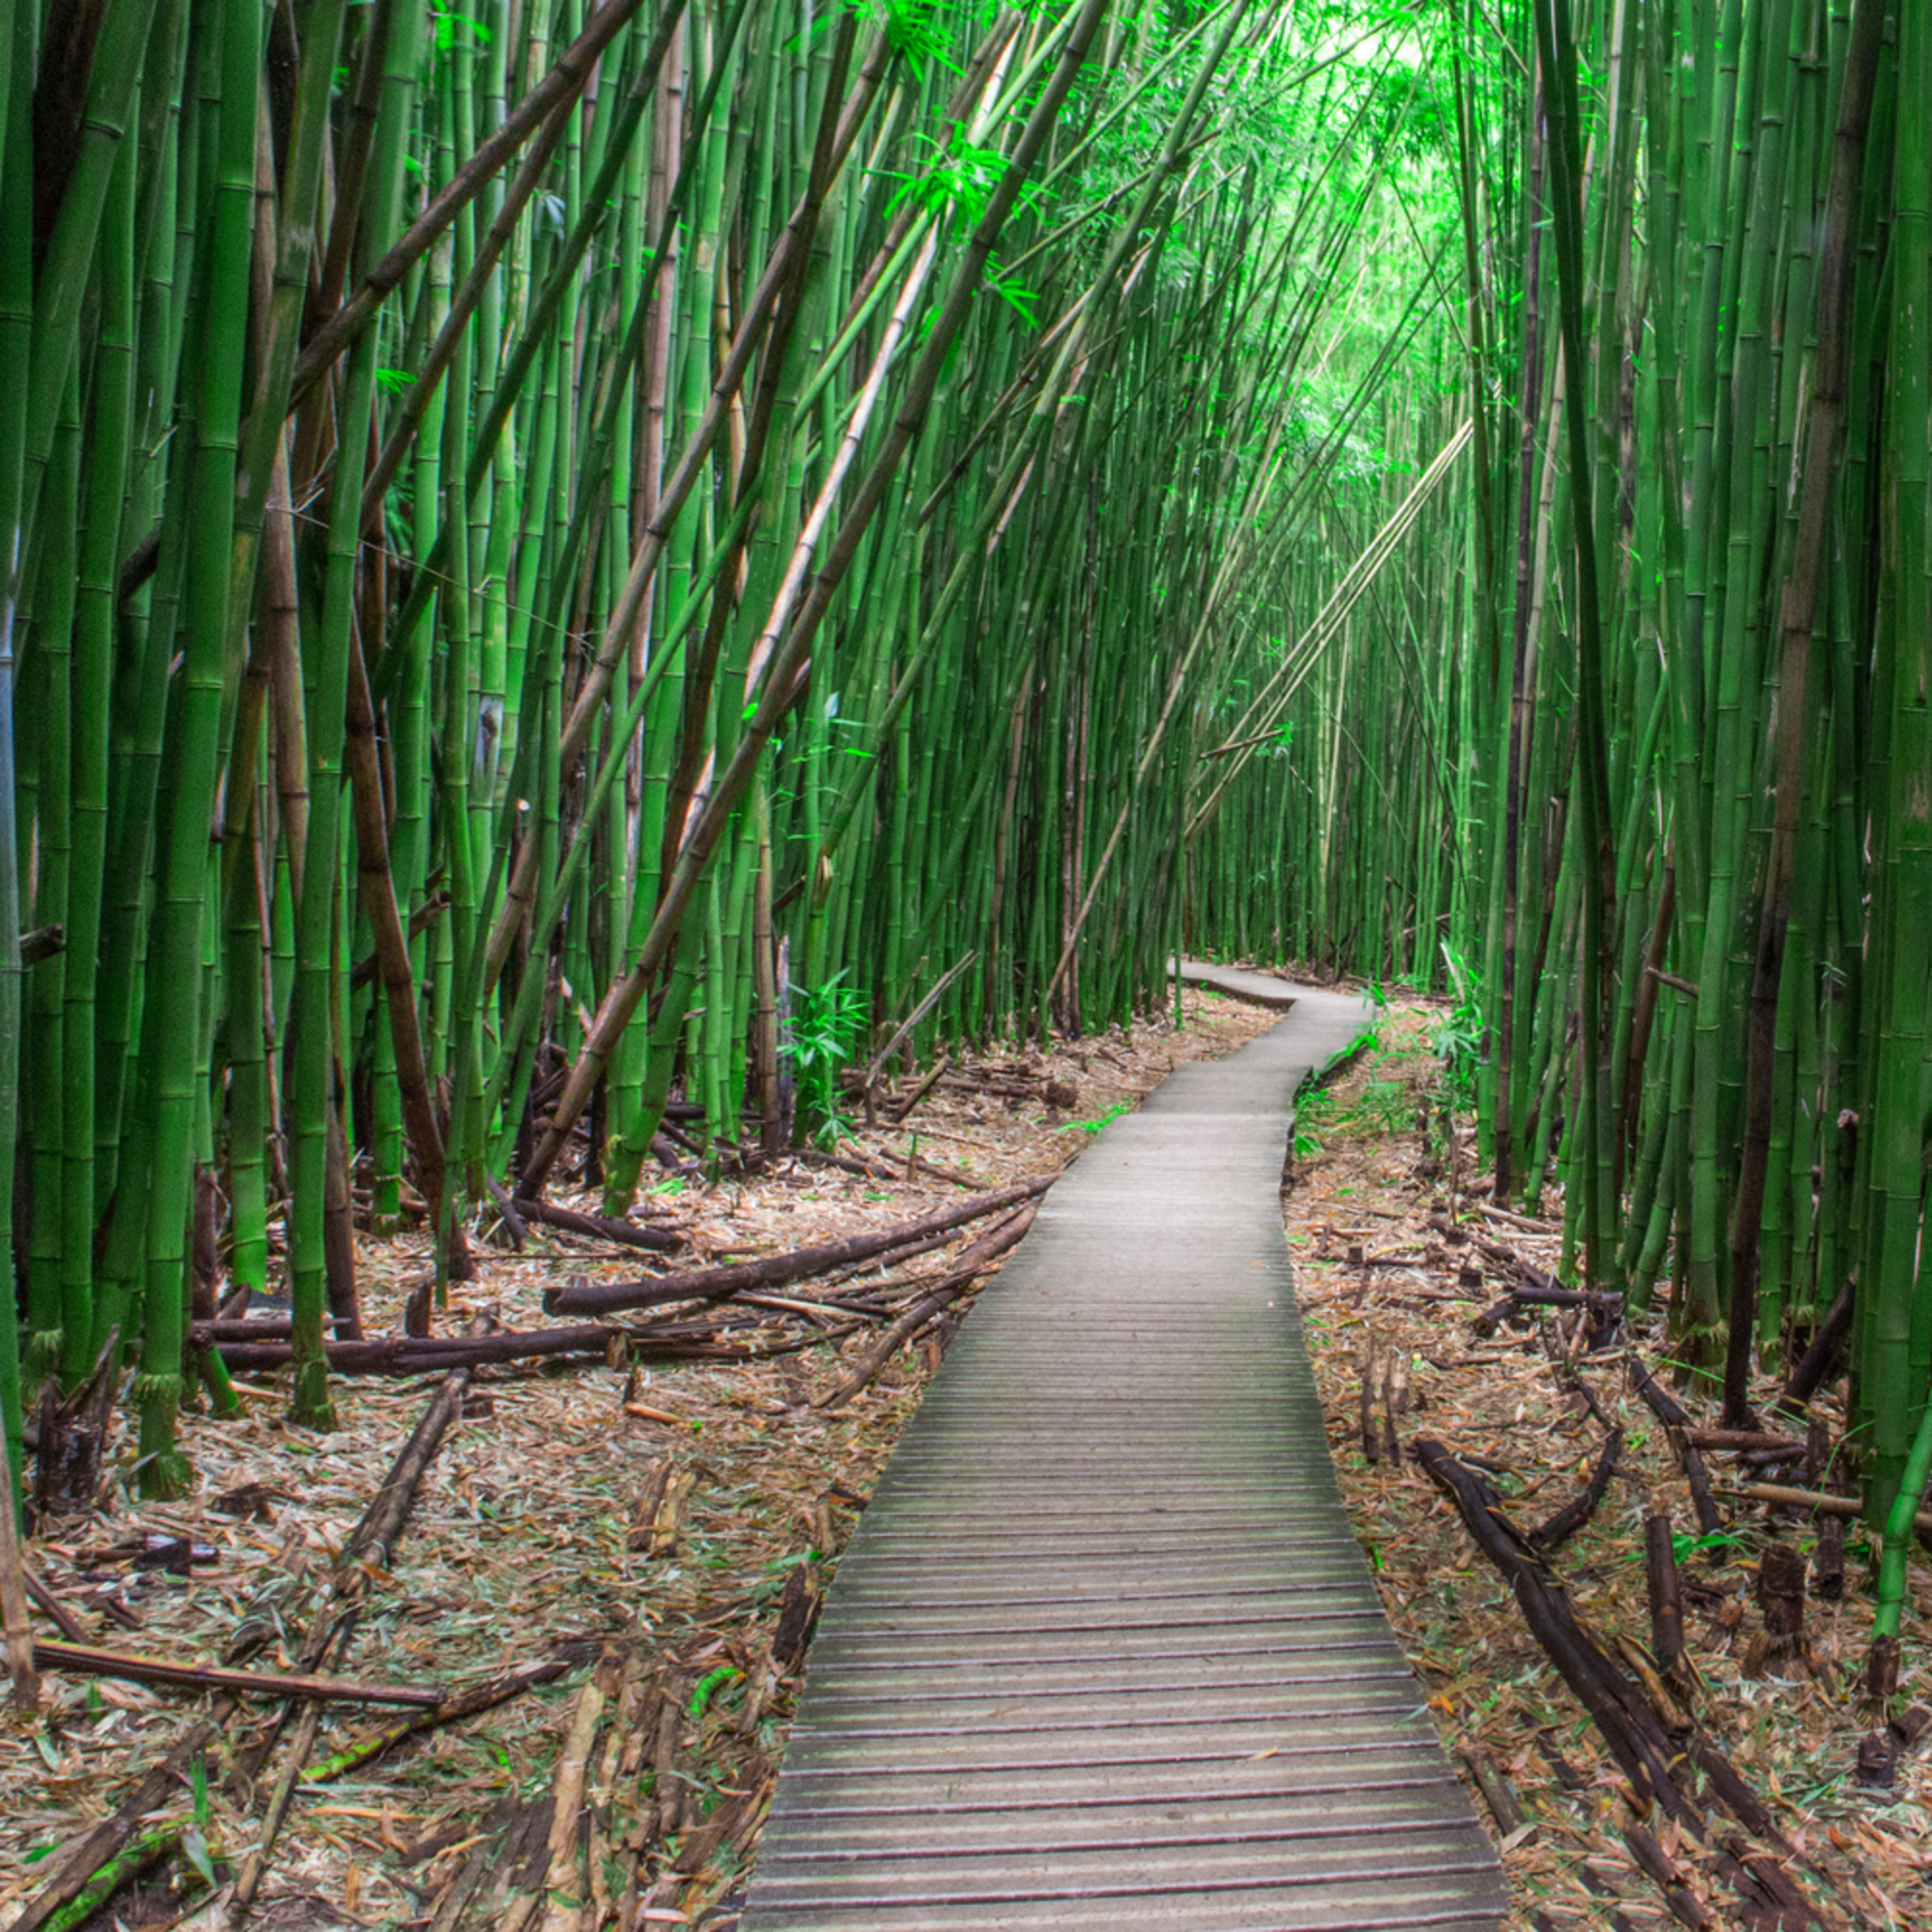 Bamboo forest 500px 18x48 300dpi jolfyi